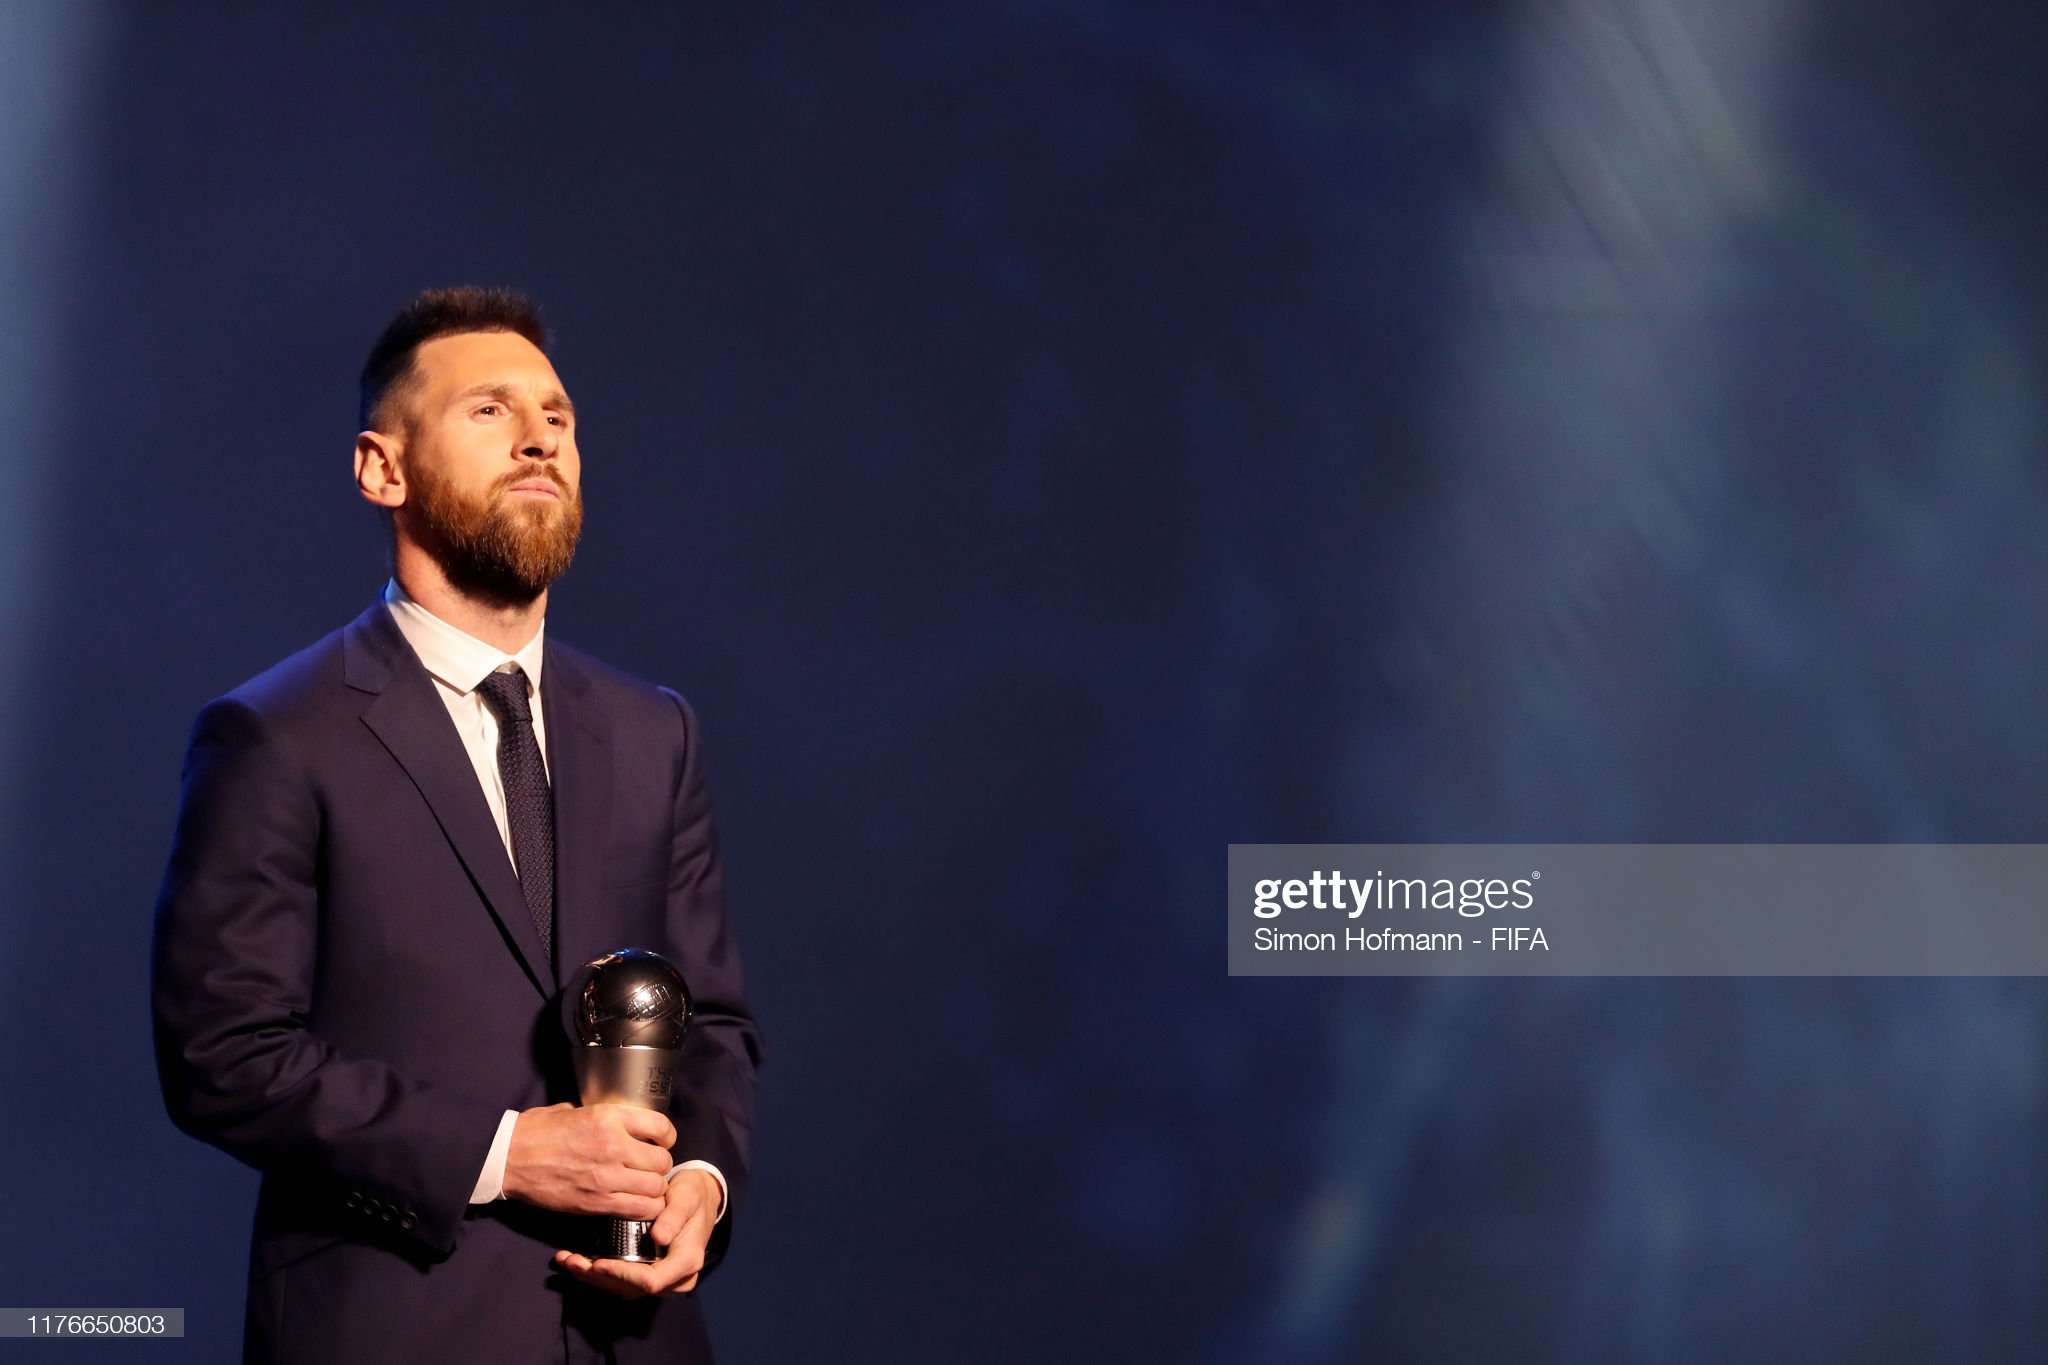 The Best FIFA Football Awards 2019 The-fifa-fifpro-mens-world11-award-winnner-lionel-messi-of-fc-and-picture-id1176650803?s=2048x2048